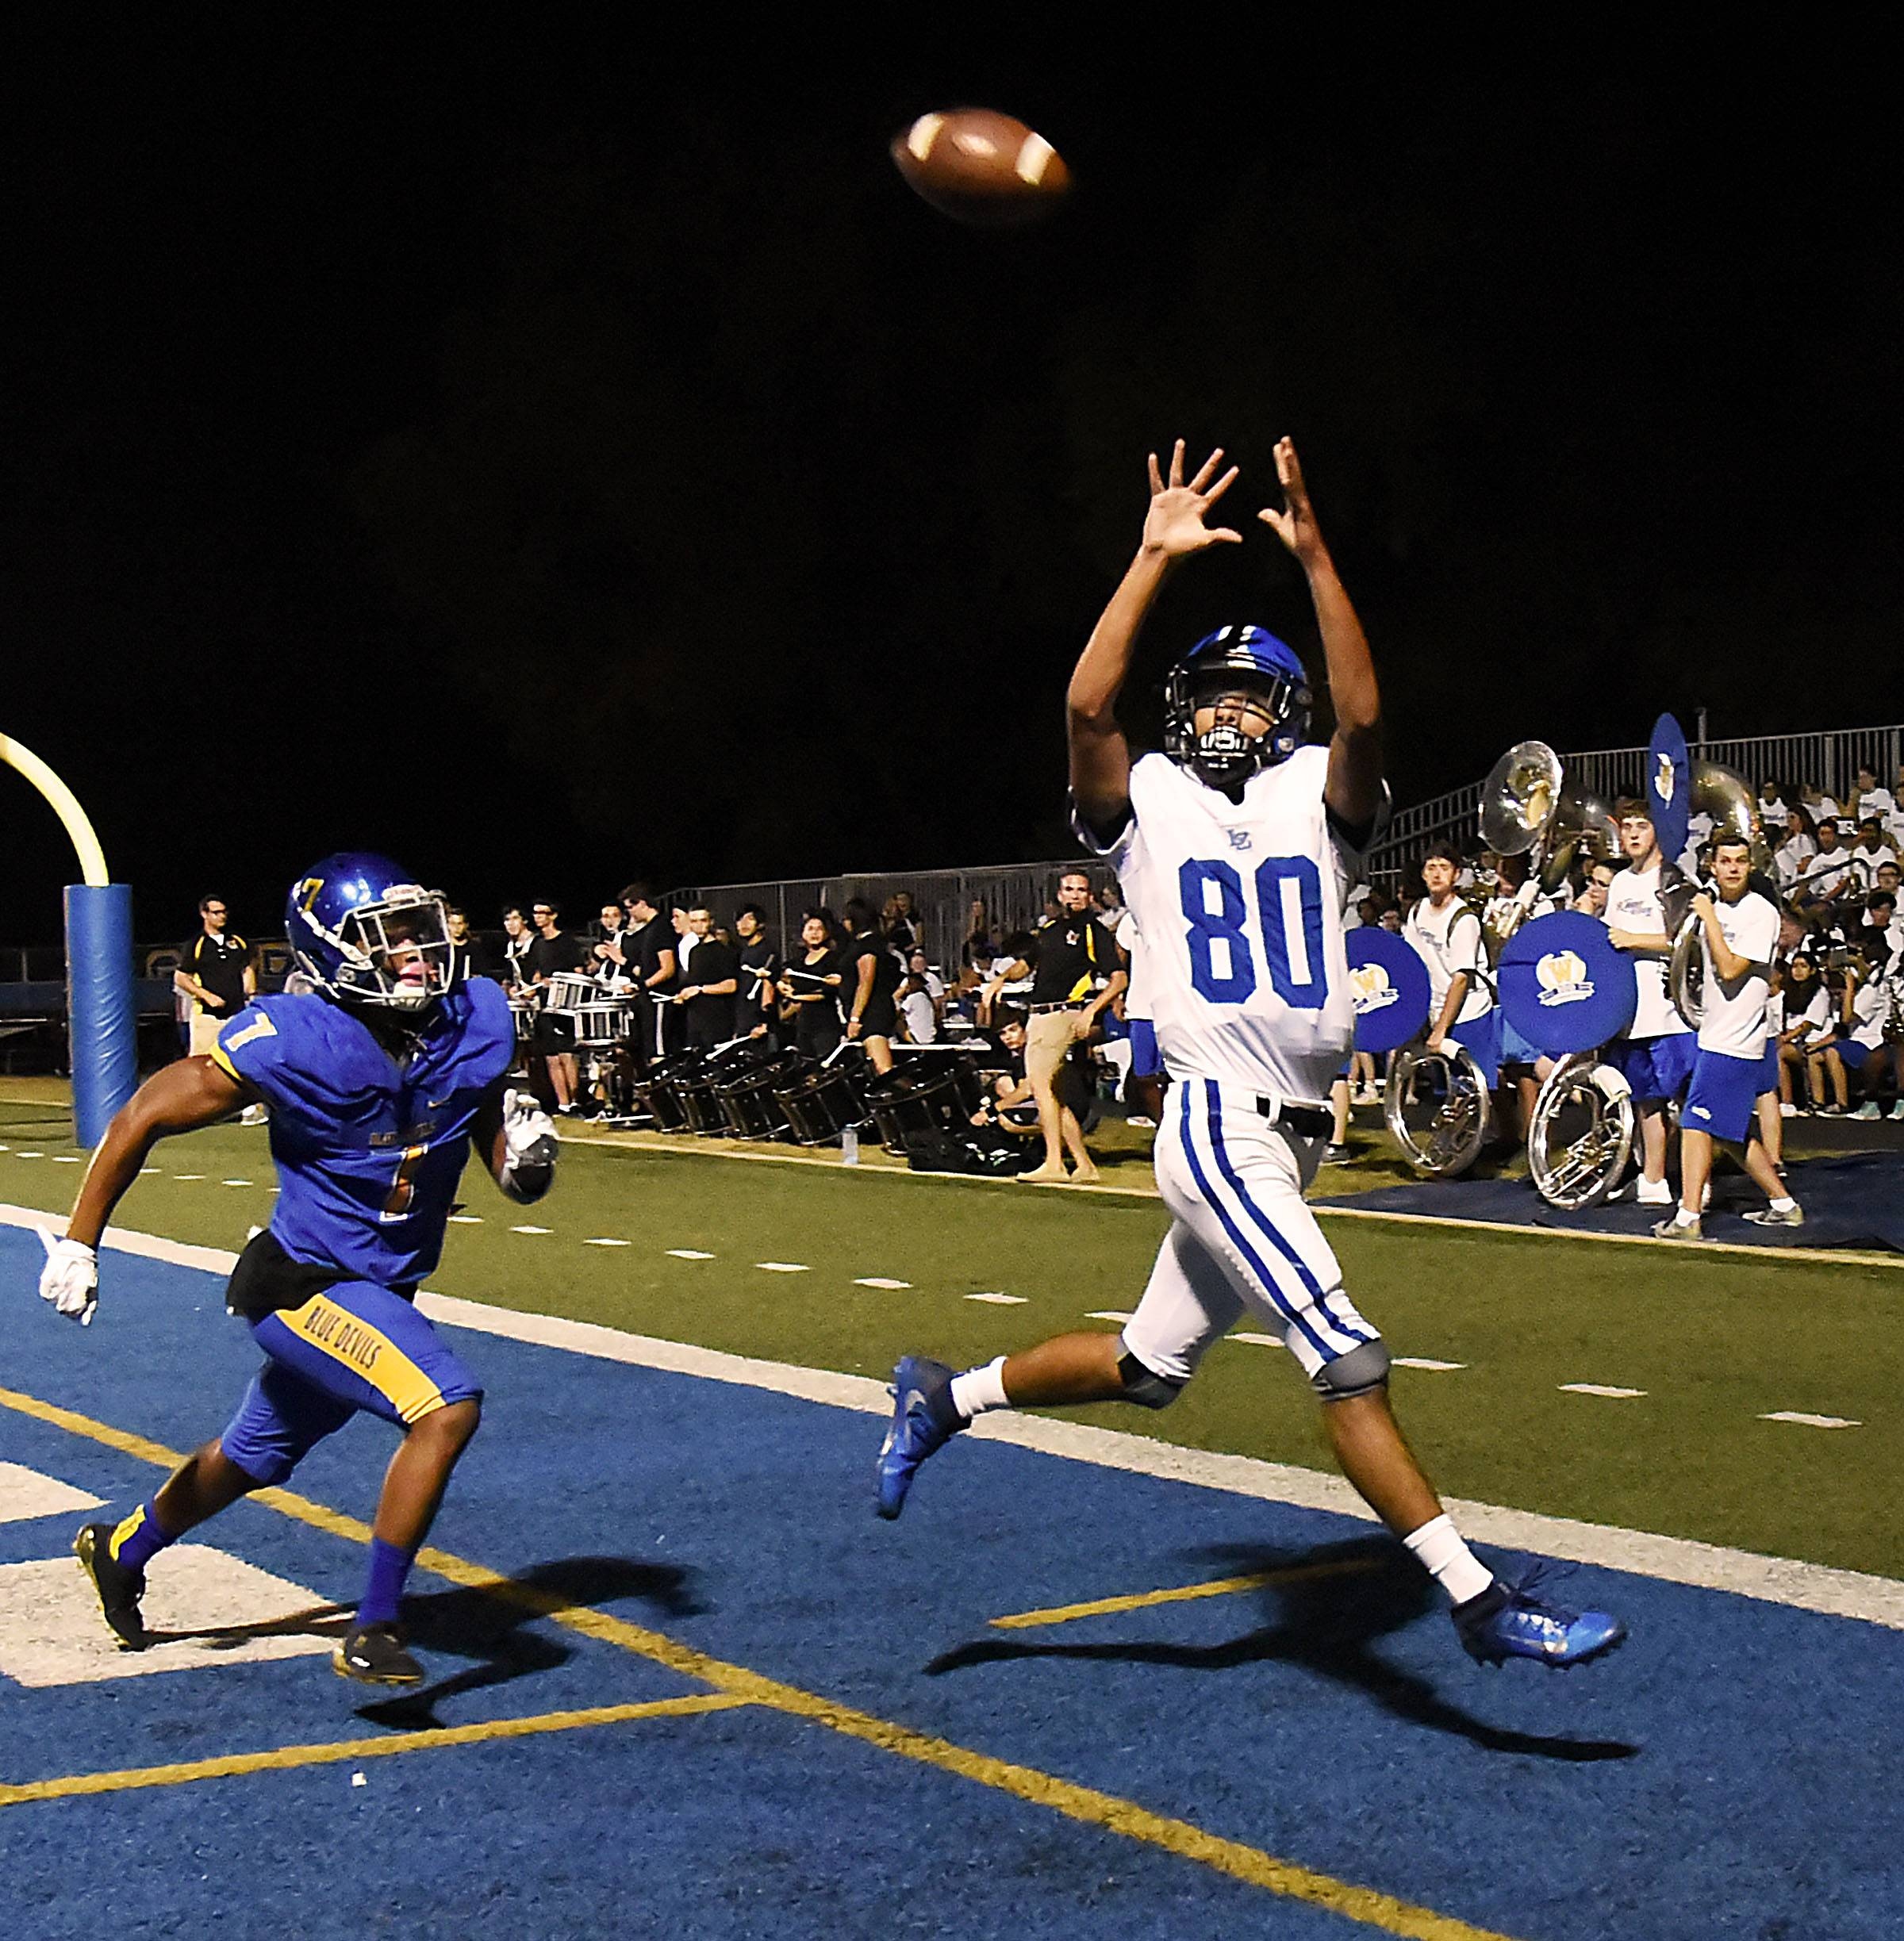 Lake Zurich's Payton Powell catches one of his 4 touchdown passes as Warren's Tavi Dungee defends on Friday in Gurnee. See story on Page 8.